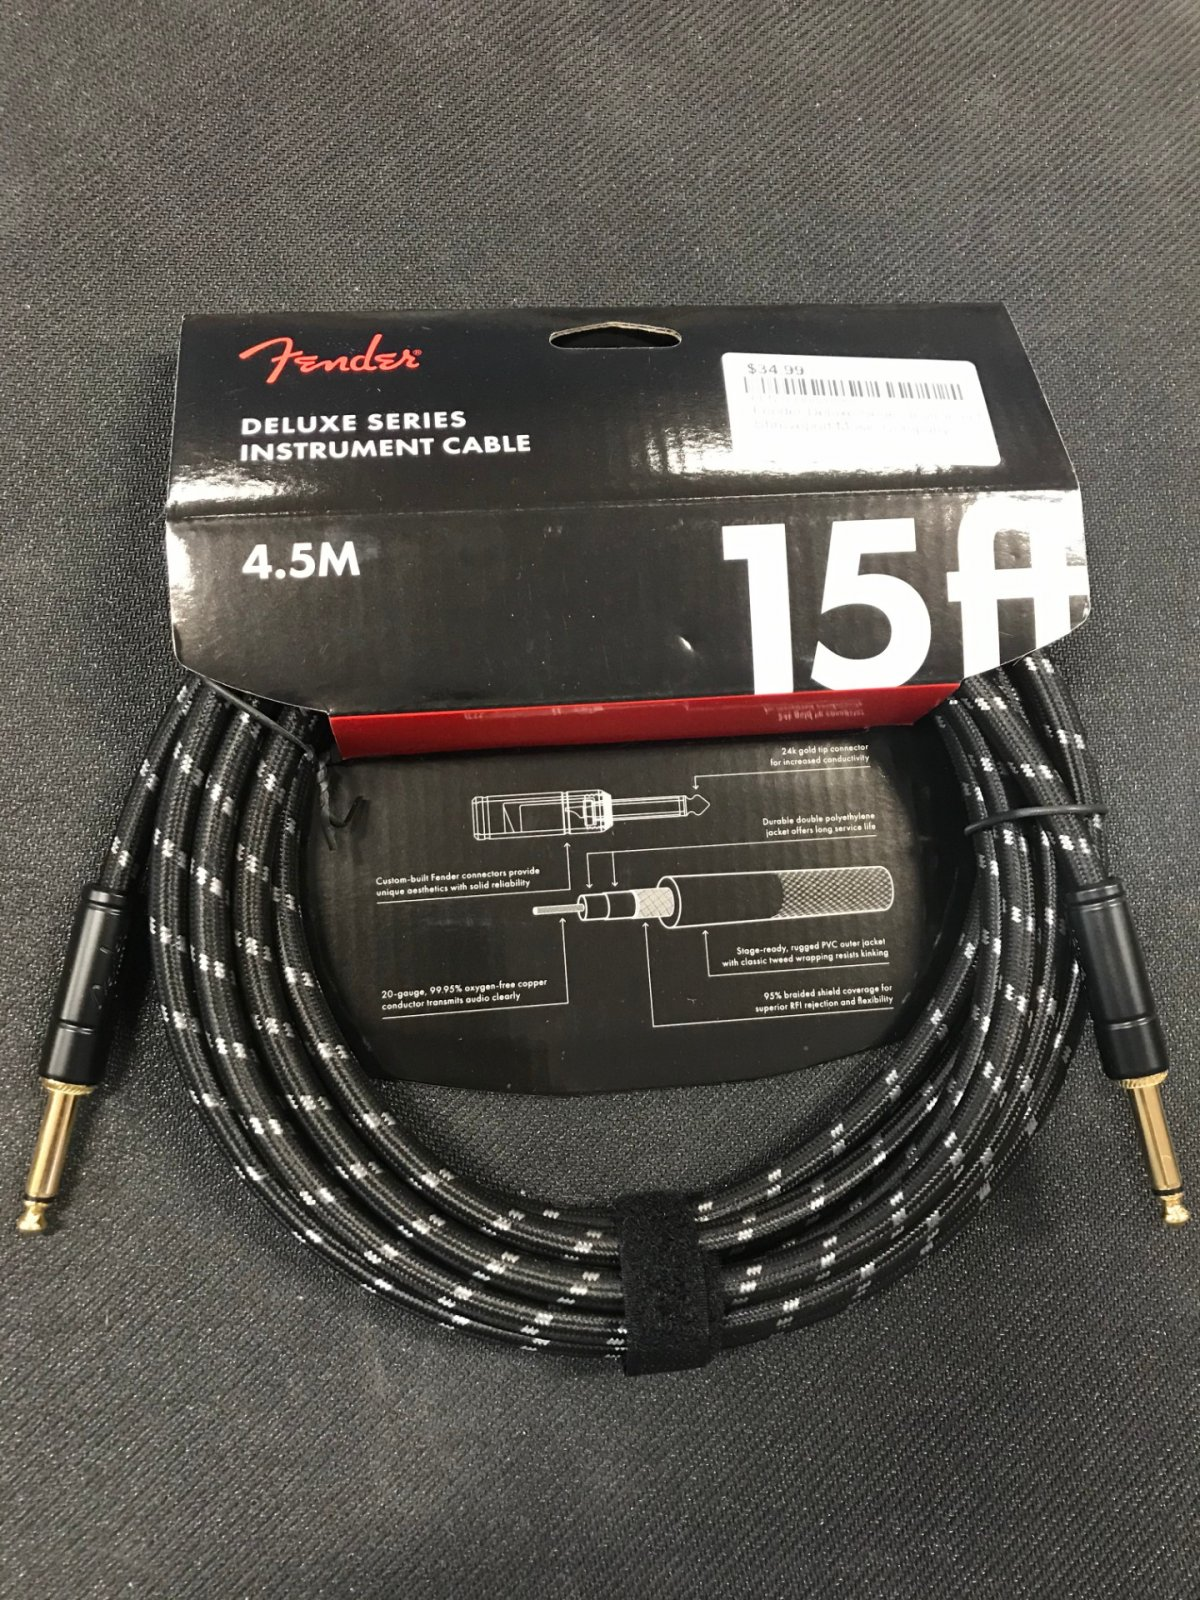 Fender Deluxe Series Instrument Cable - 15' Straight-Straight, Black Tweed